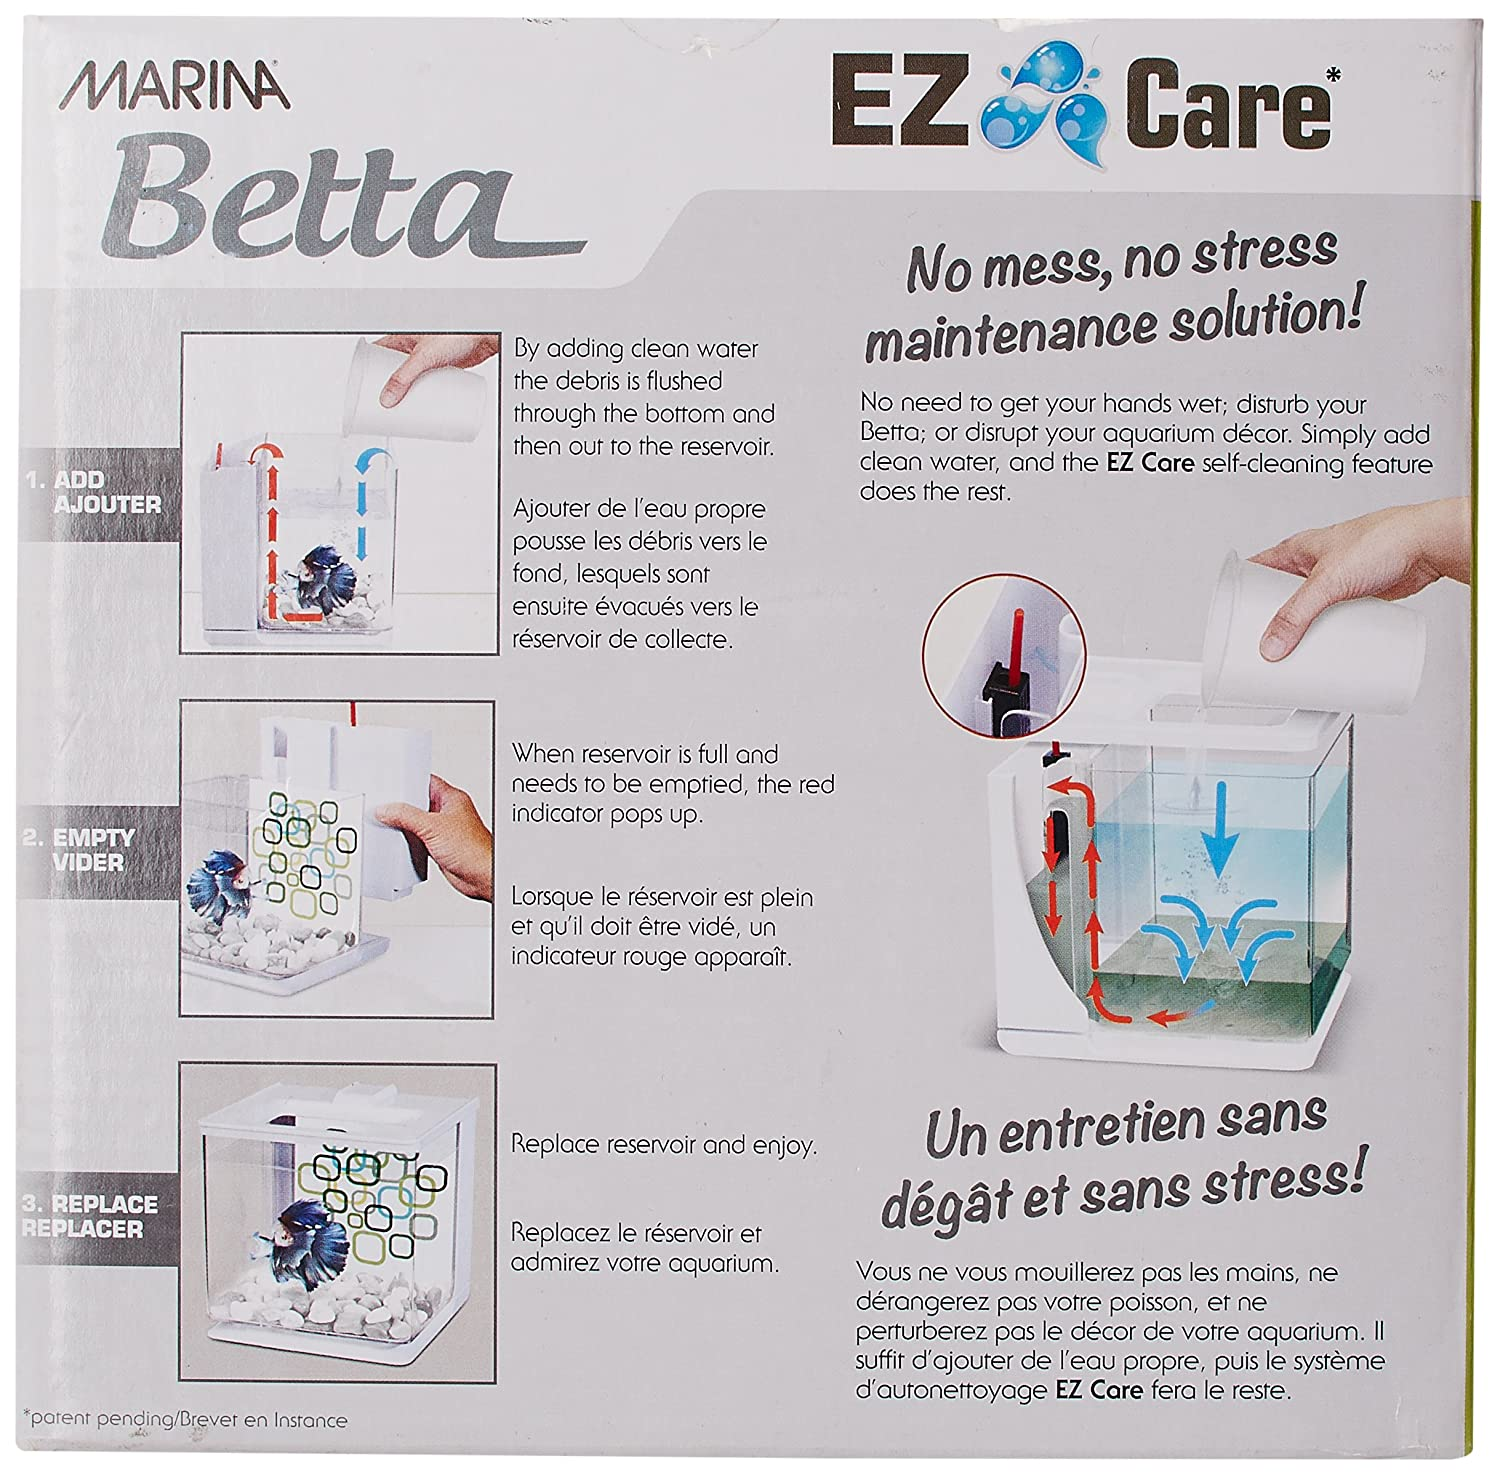 Marina Bettera Ez Care 2.5 L, Color Blanco: Amazon.es: Productos para mascotas